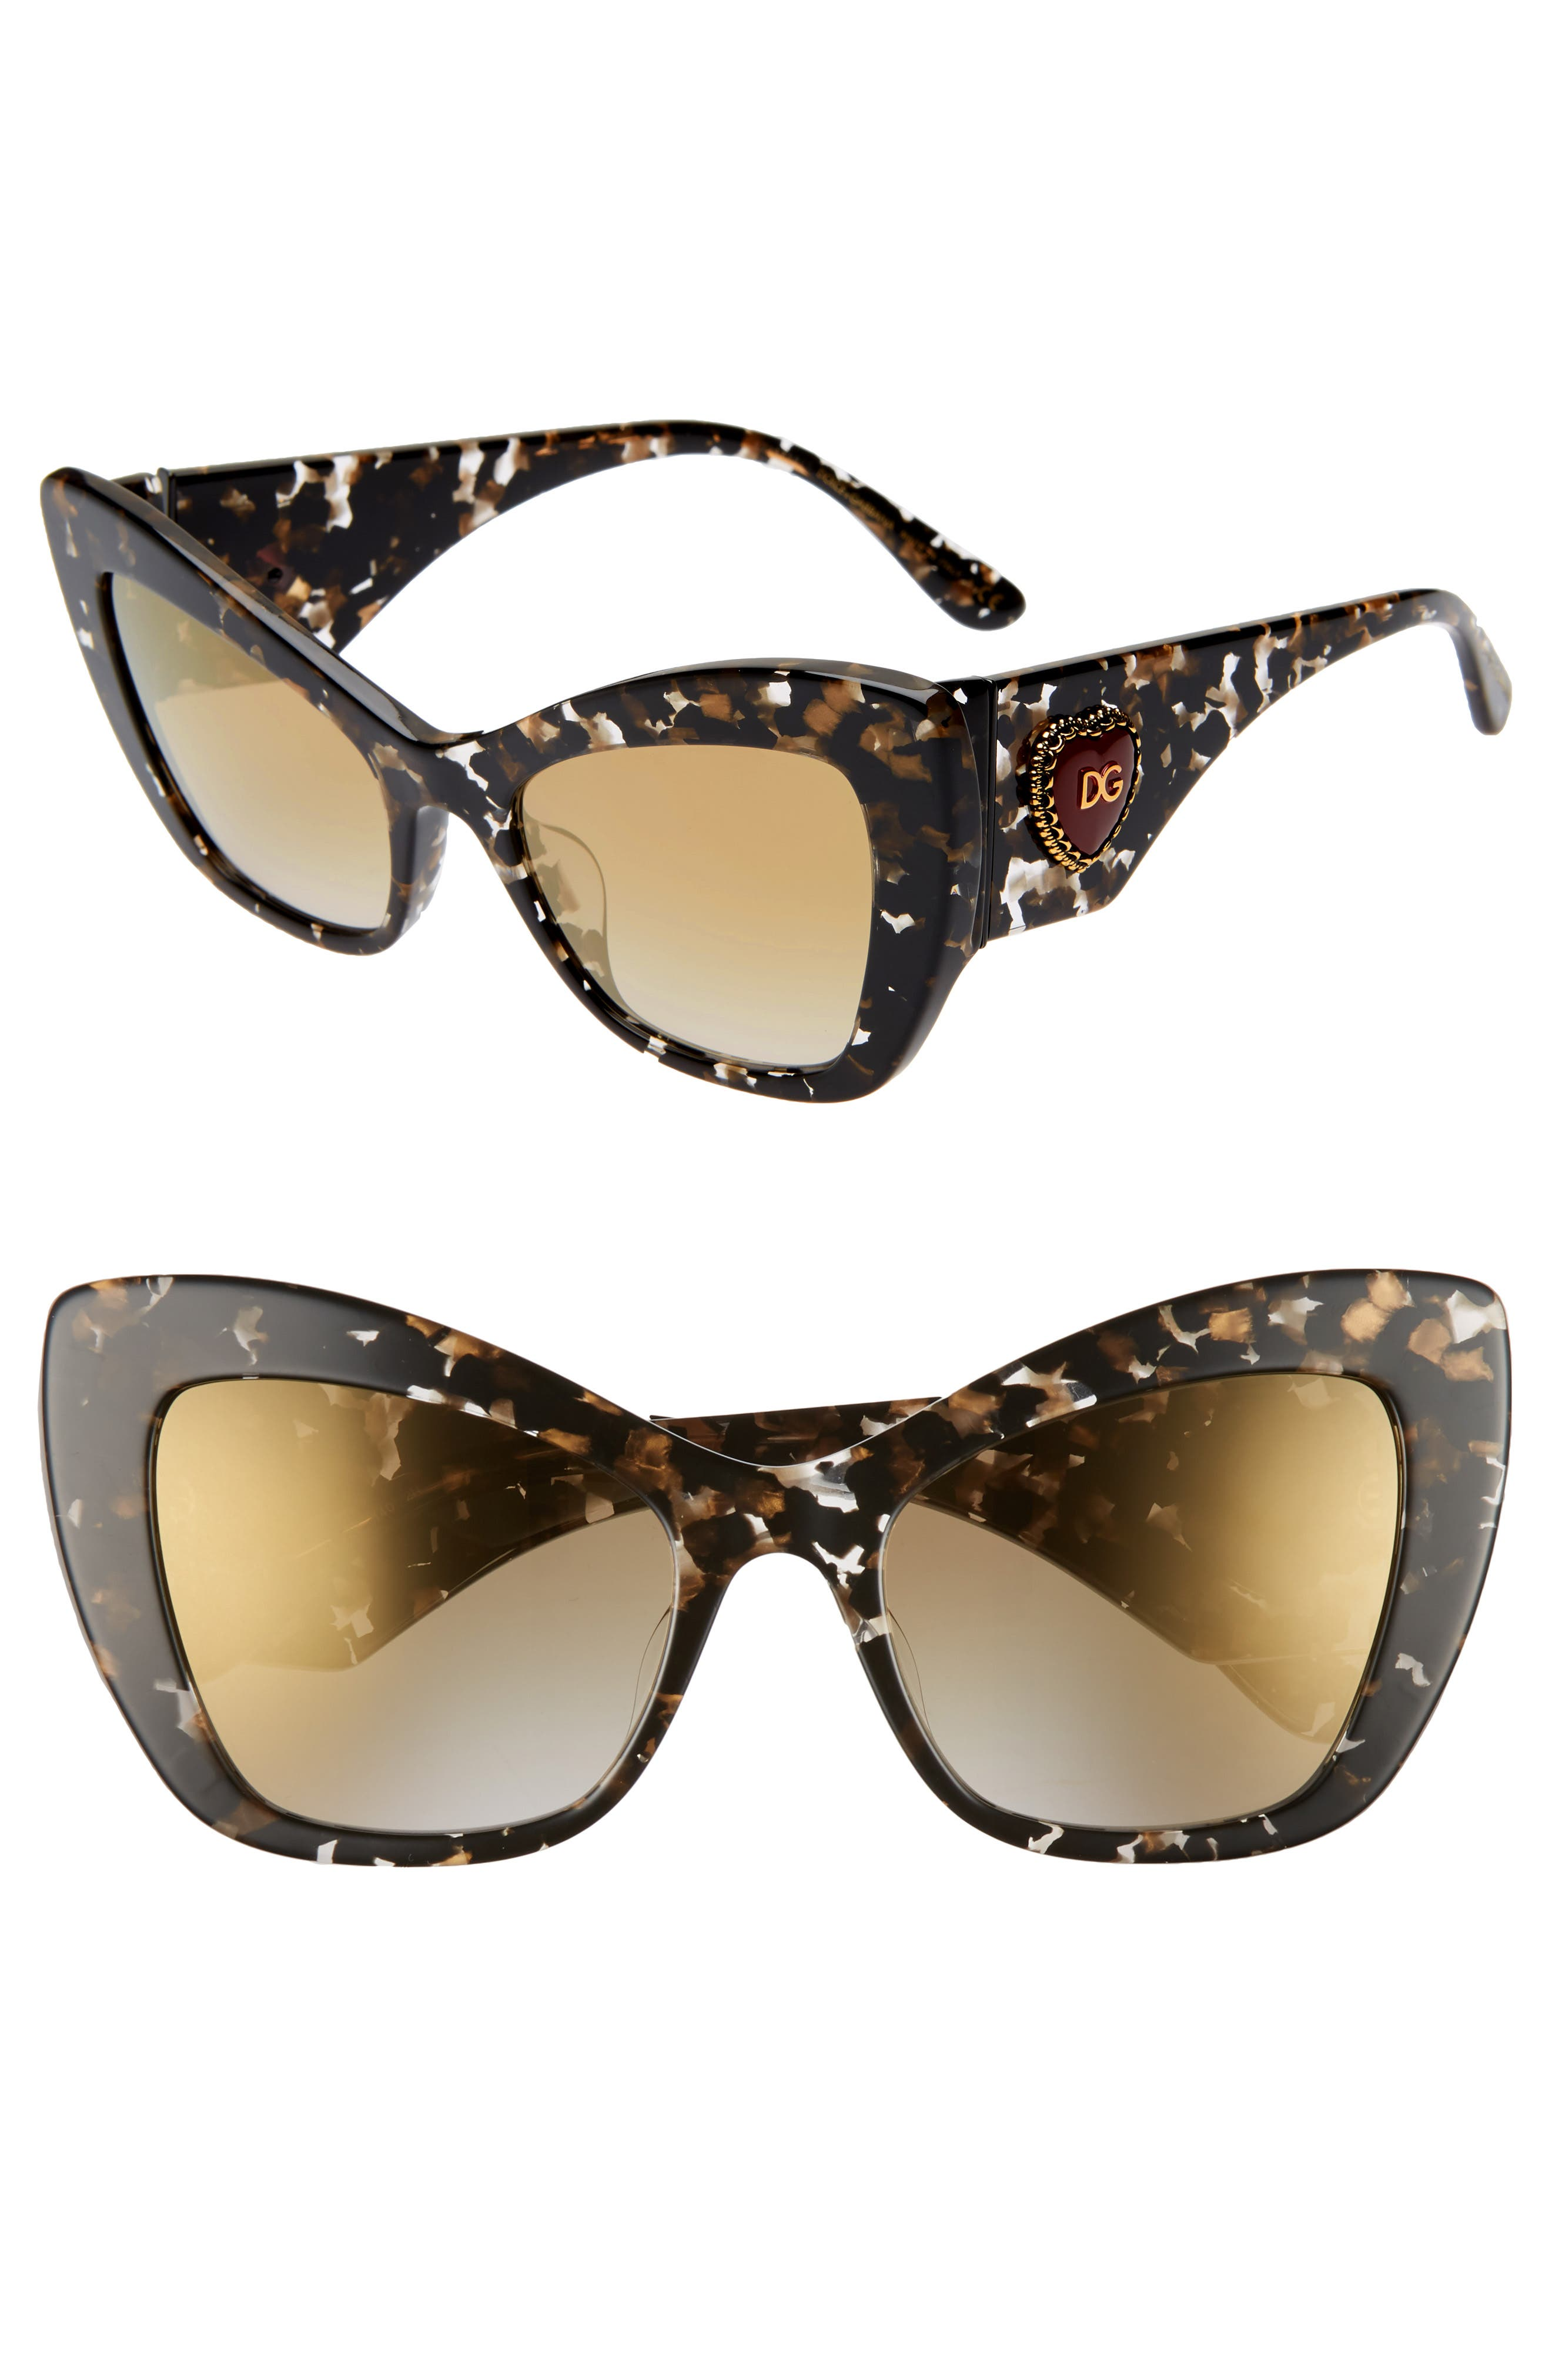 DOLCE&GABBANA,                             Sacred Heart 54mm Gradient Cat Eye Sunglasses,                             Main thumbnail 1, color,                             BLACK GOLD GRADIENT MIRROR